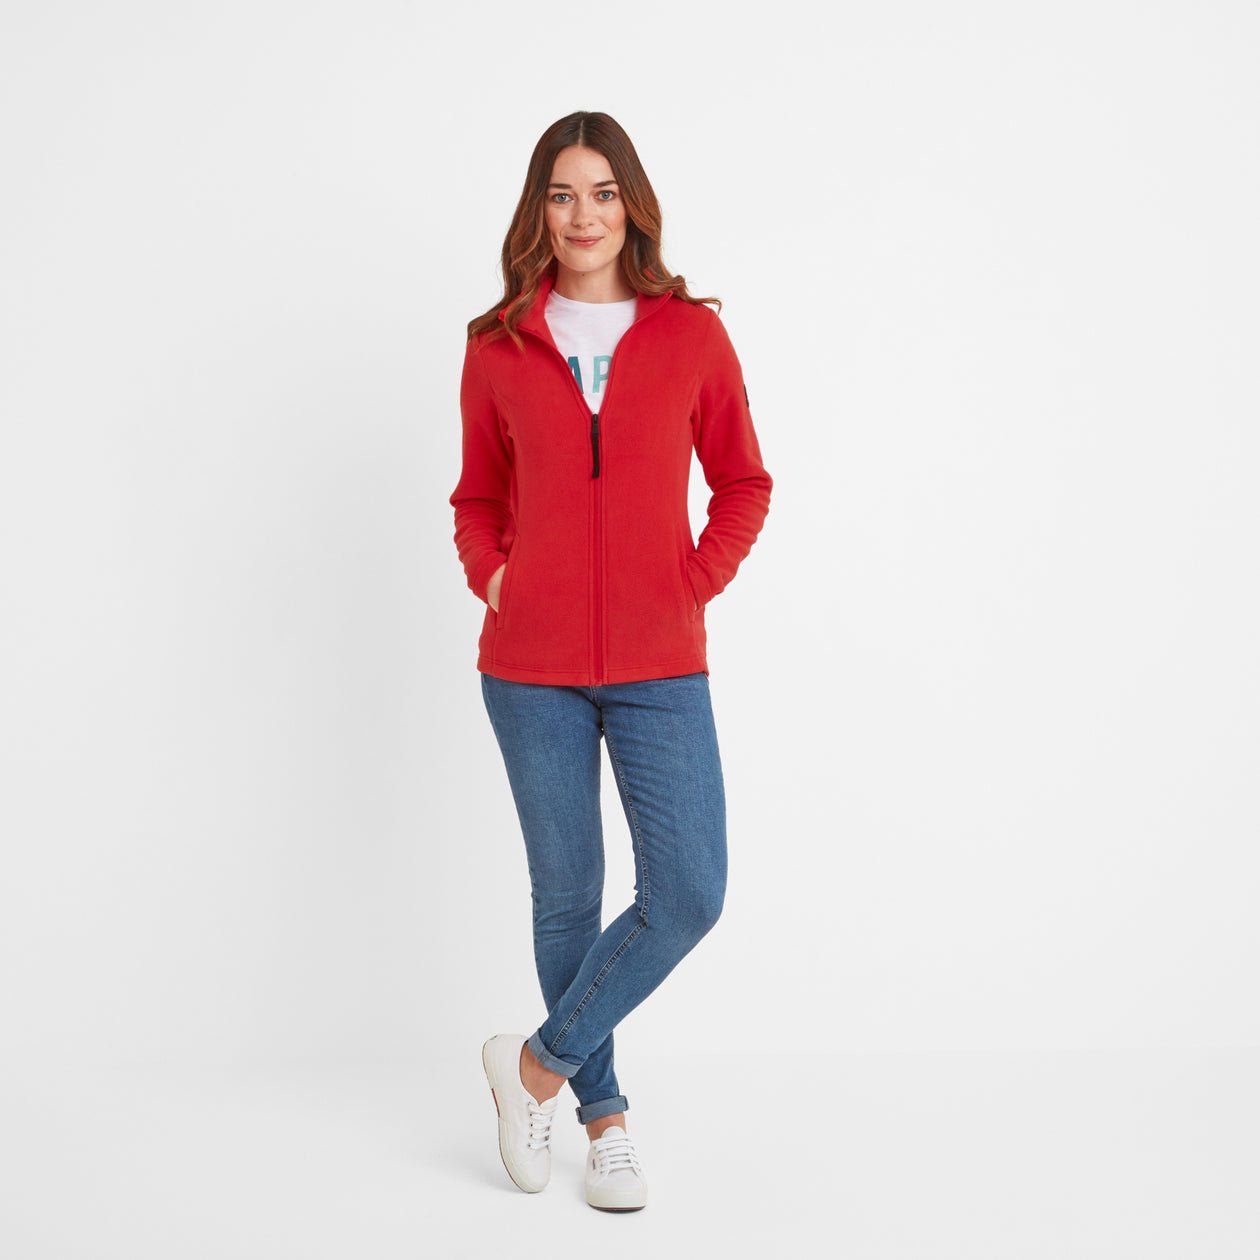 Shire Womens Fleece Jacket - Dark Coral image 4